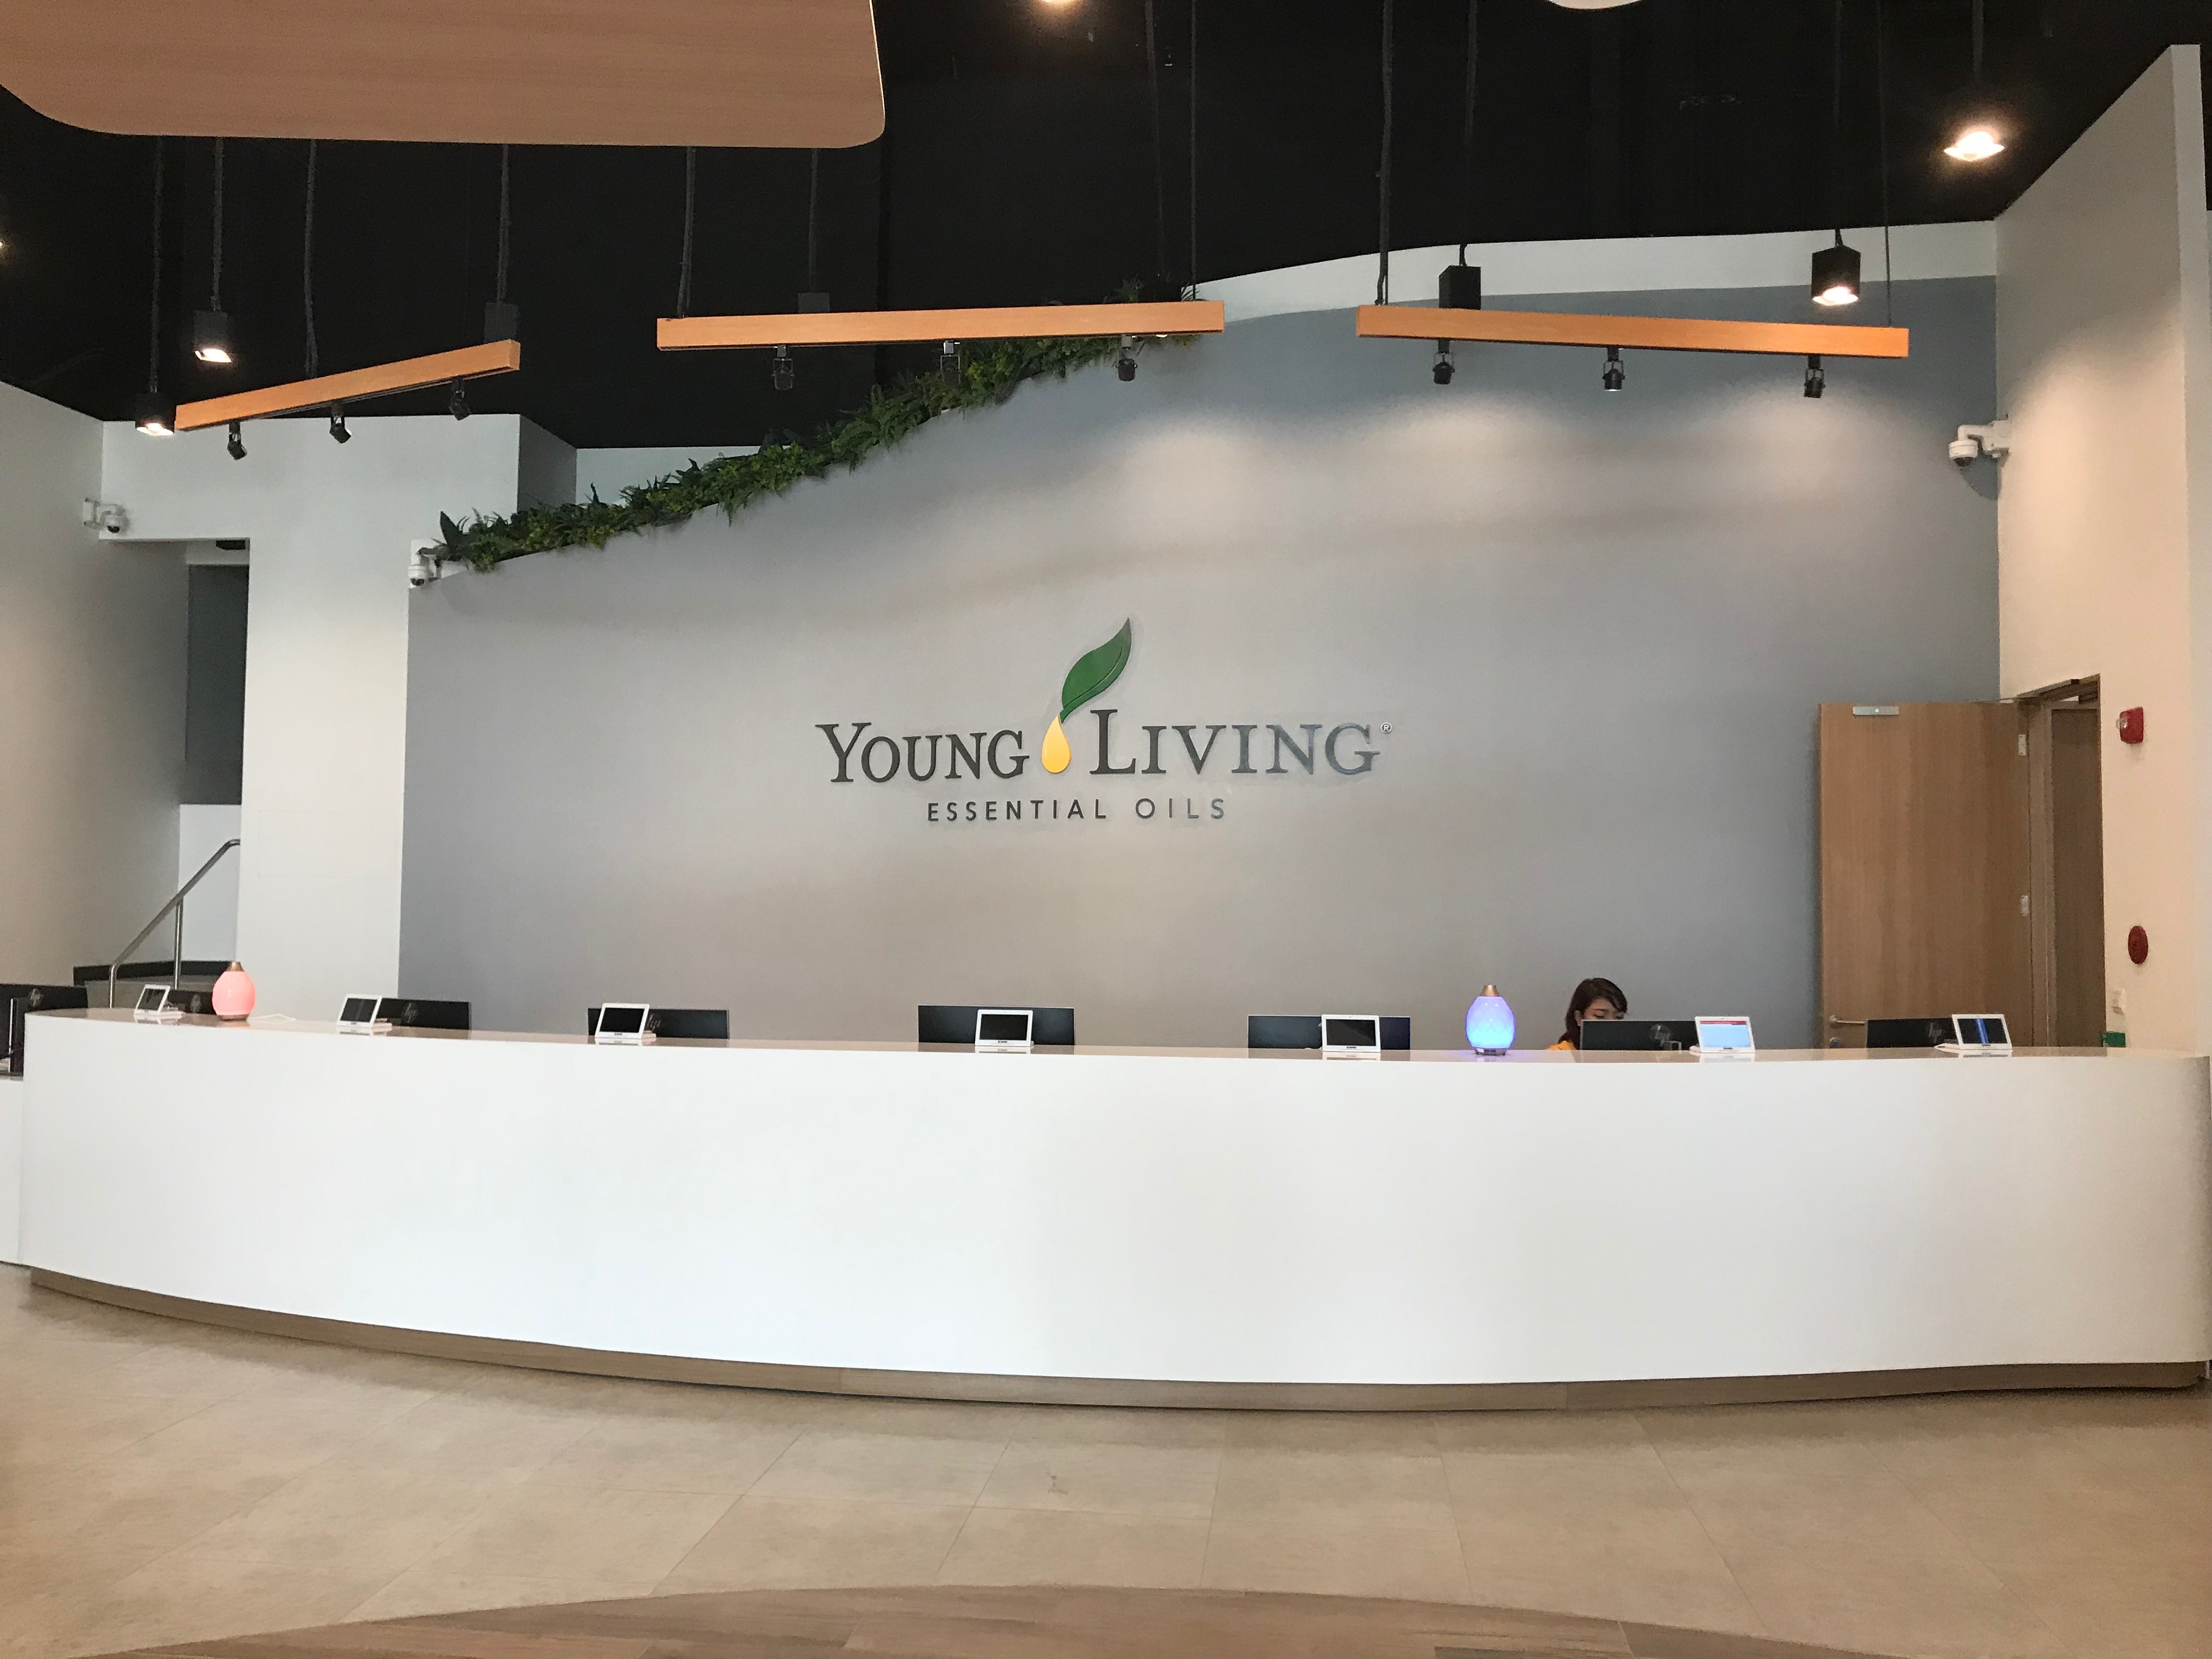 Experience Center in BGC – Live Laugh Love